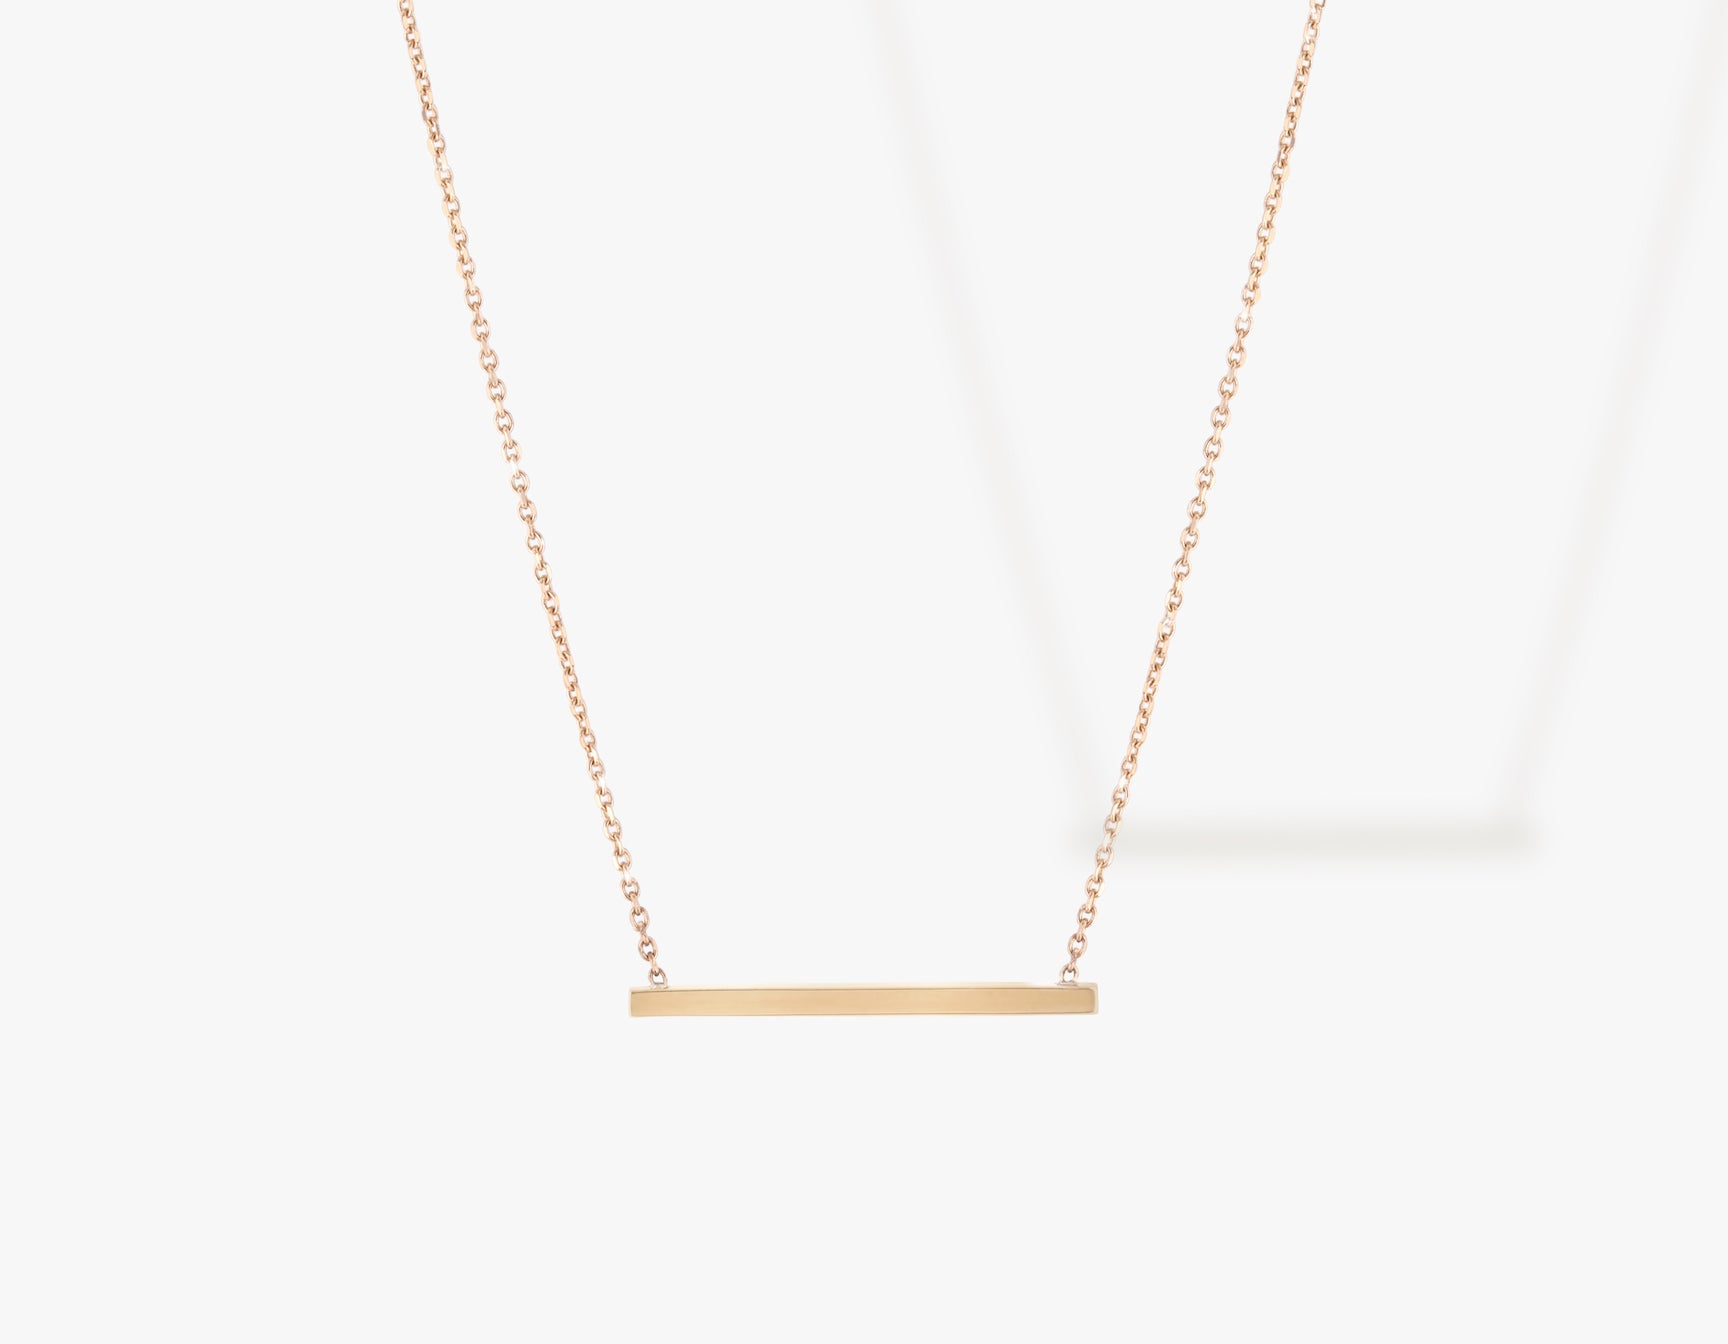 Vrai solid gold Line Necklace, 14K Rose Gold